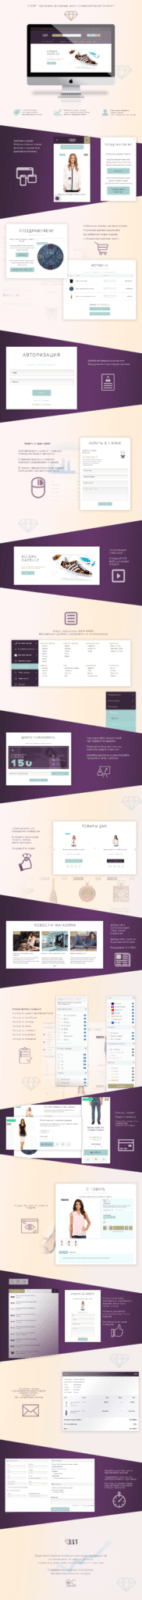 Шаблон Luxury template v3.5 NulleD luxury template opencart - luxury - Шаблон Luxury template v3.5 NulleD